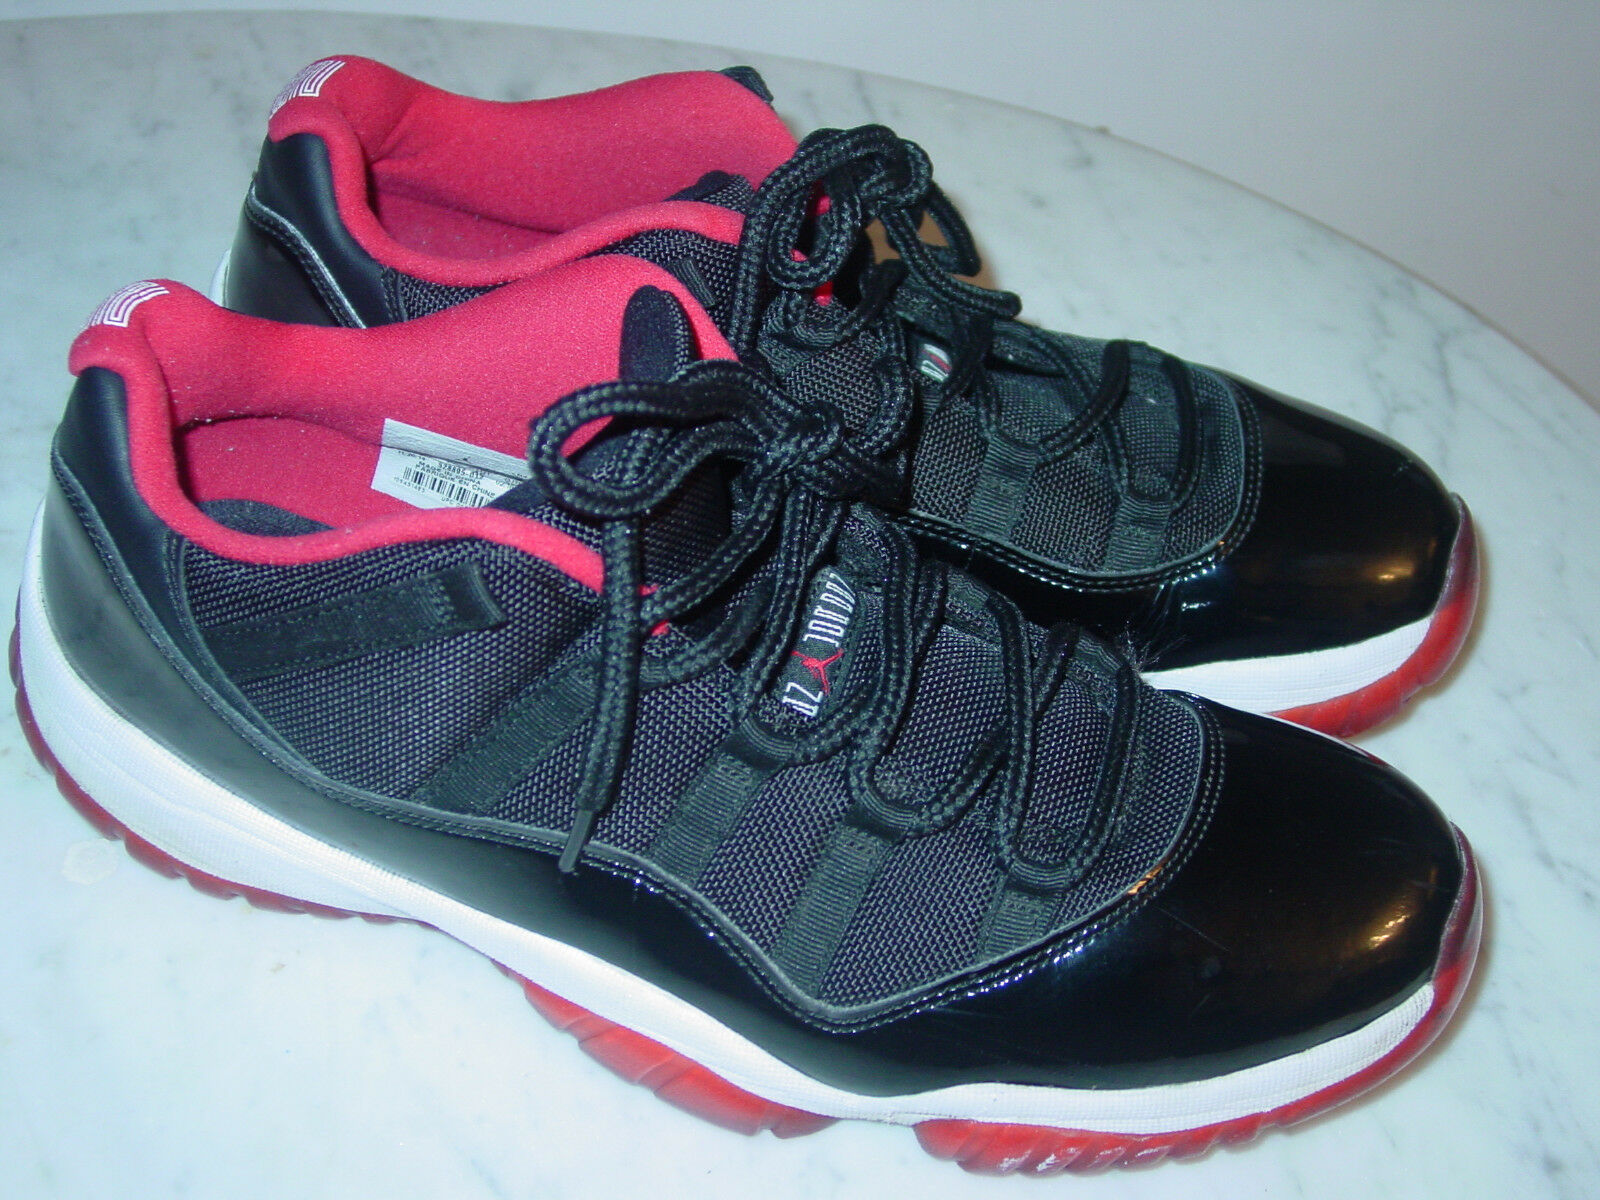 2014 Nike Air Jordan Retro 11  Bred  Black Red Low shoes  Size 12 Sold As Is